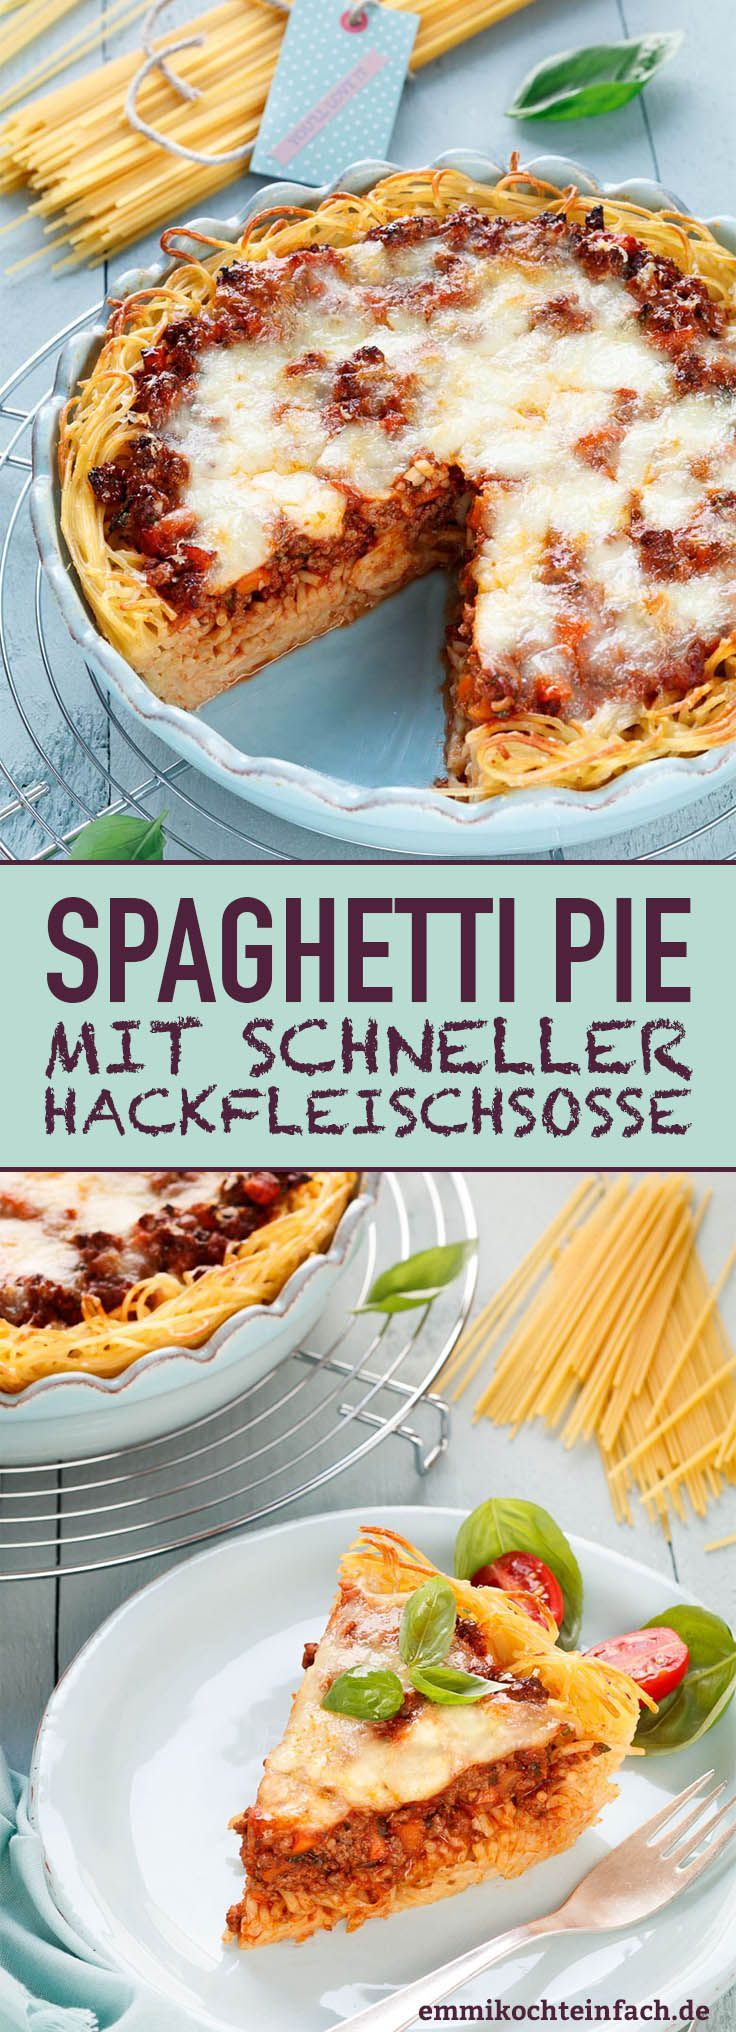 Spaghetti casserole with quick minced meat sauce  easy to cook  Spaghetti Pie  wwwemmikochteinf